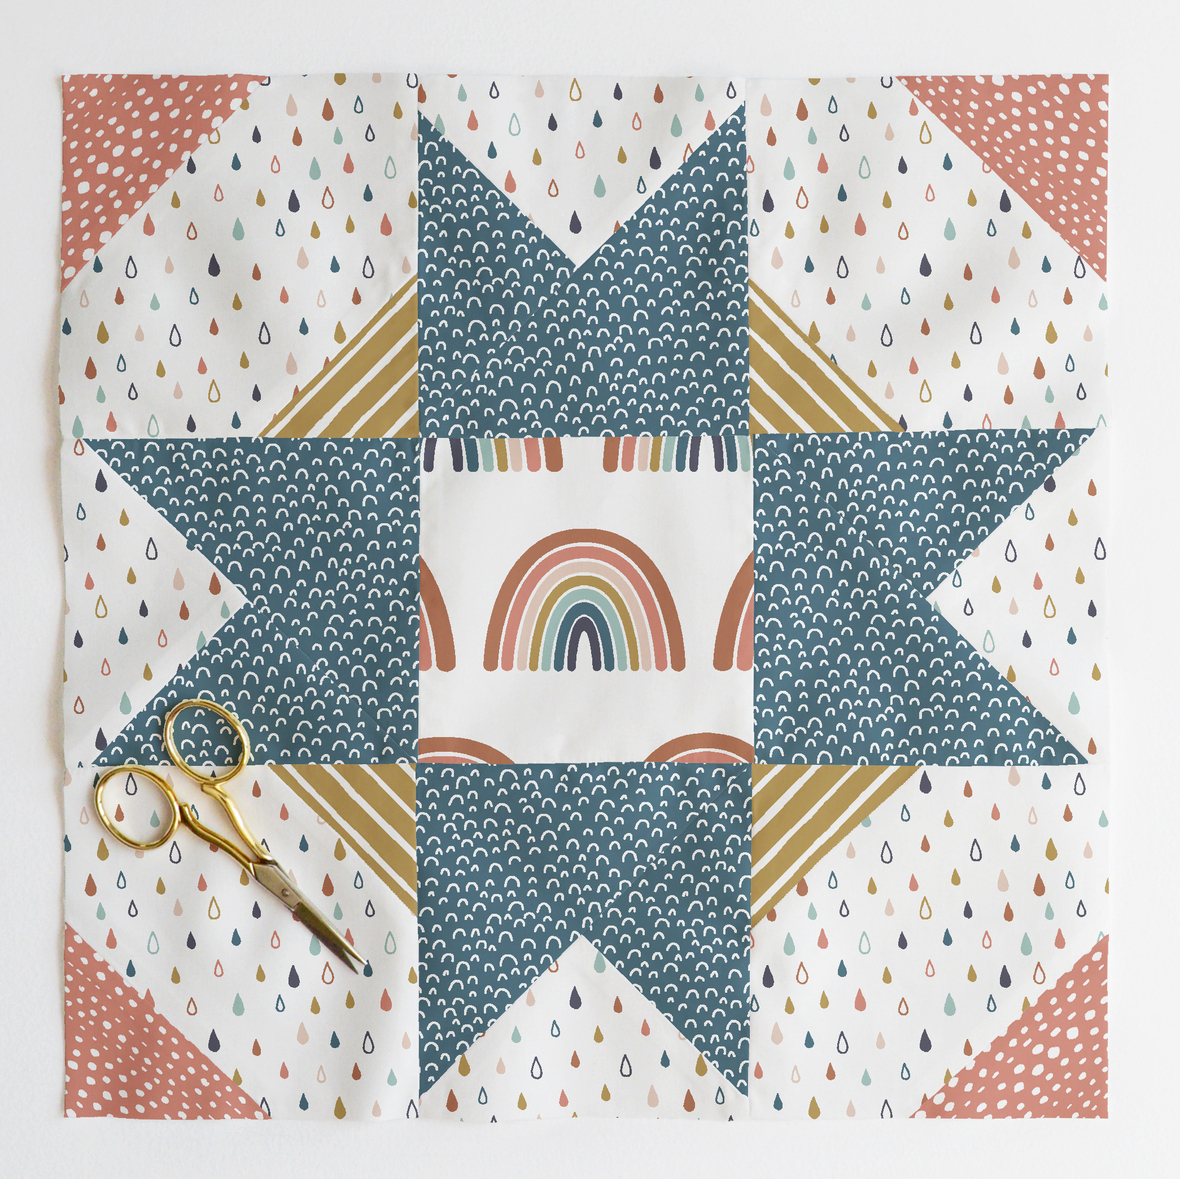 compass star quilt block Harvest